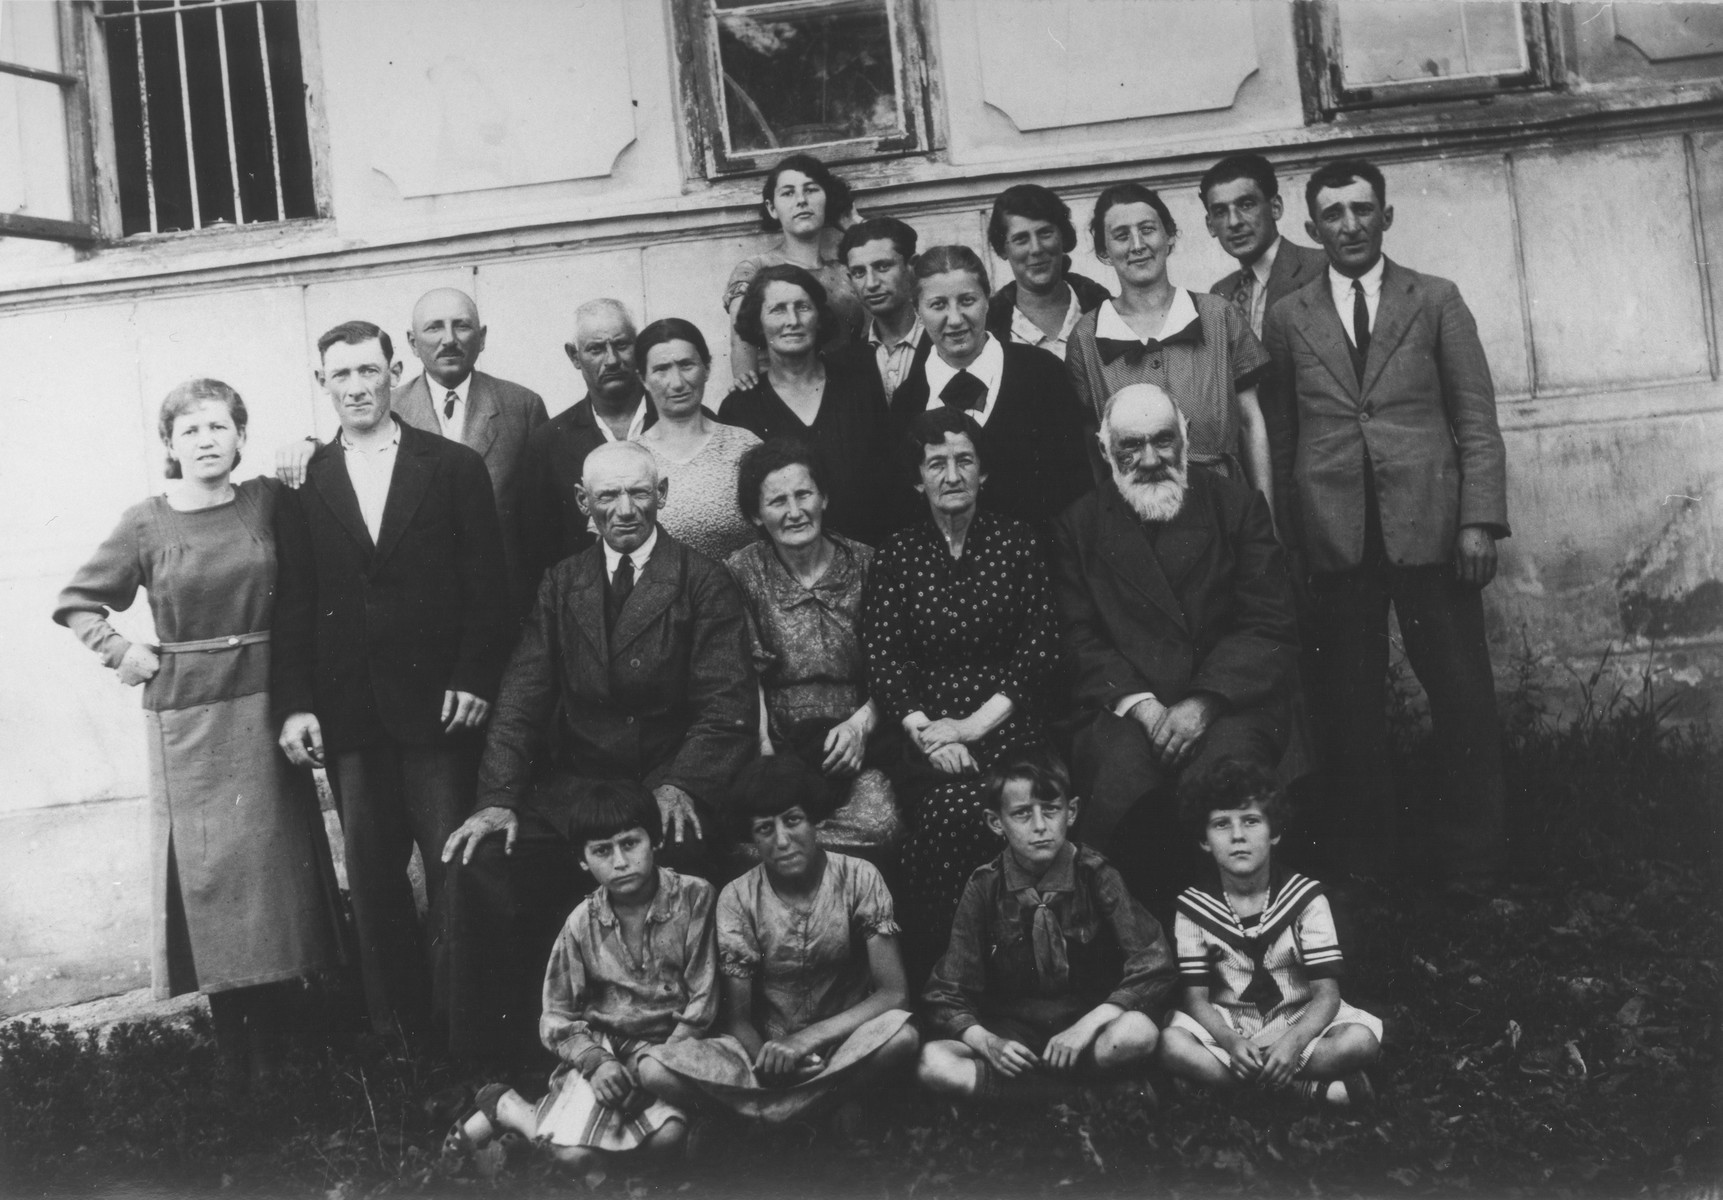 Group portrait of an extended Jewish family outside their home in Piotrkow Trybunalski, Poland.  Pictured are members of the Wolrajch family.  The photograph was taken on the occasion of the visit of Helen Tolep from the U.S.  Pictured in the front row (left to right): two Kudich children, Chiemic and Ginka Wolrajch.  Second row: Reuven and Zelda Fish and Rachel and Moishe Wolrajch.  Third row: Avrum's wife, Avrum Wolrajch, David Fish, Moishe Kudich, Geitel Kudich, Sheindl Fish (top), Sheindl Kudich, David Fish, Helen Tolep, Rachel Wolrajch, Chia Sura Wolrajch, Joel Wolrajch and Josef Wolrajch.